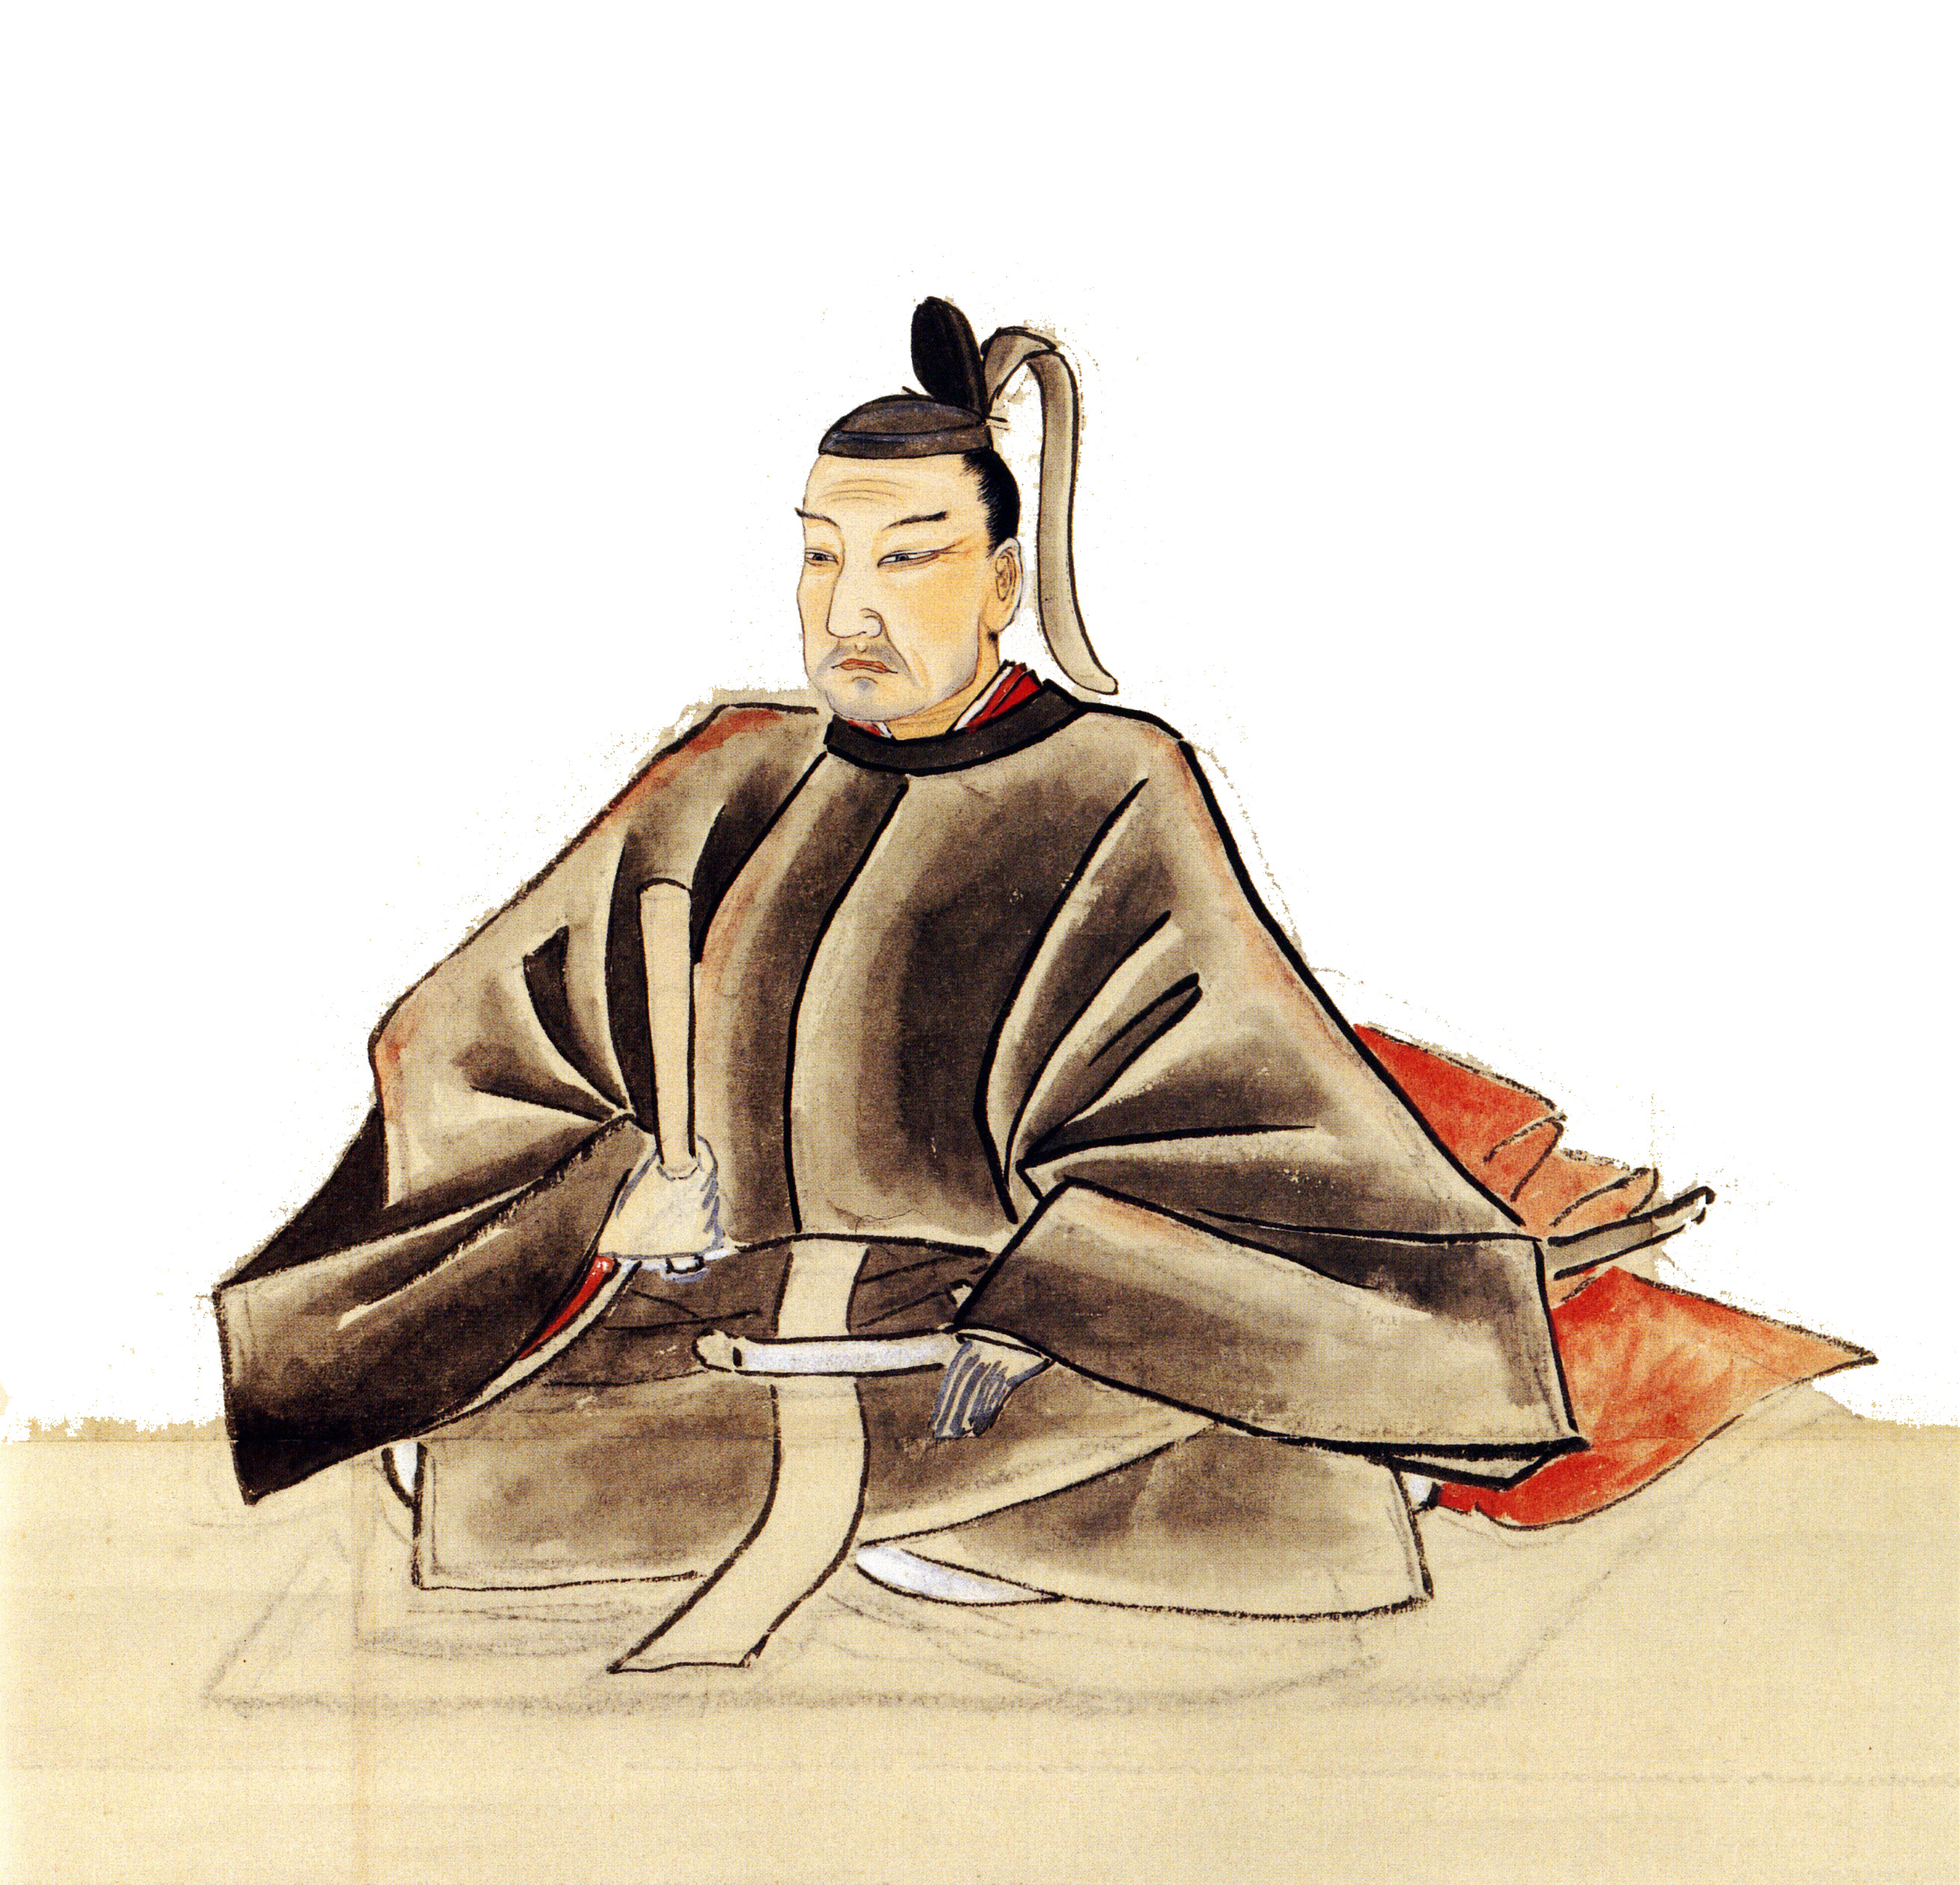 an overview of the shoguns of japan Japan's tokugawa (or edo) period, which lasted from 1603 to 1867, would be the final era of traditional japanese government, culture and society before the meiji restoration of 1868 toppled the long-reigning tokugawa shoguns and.